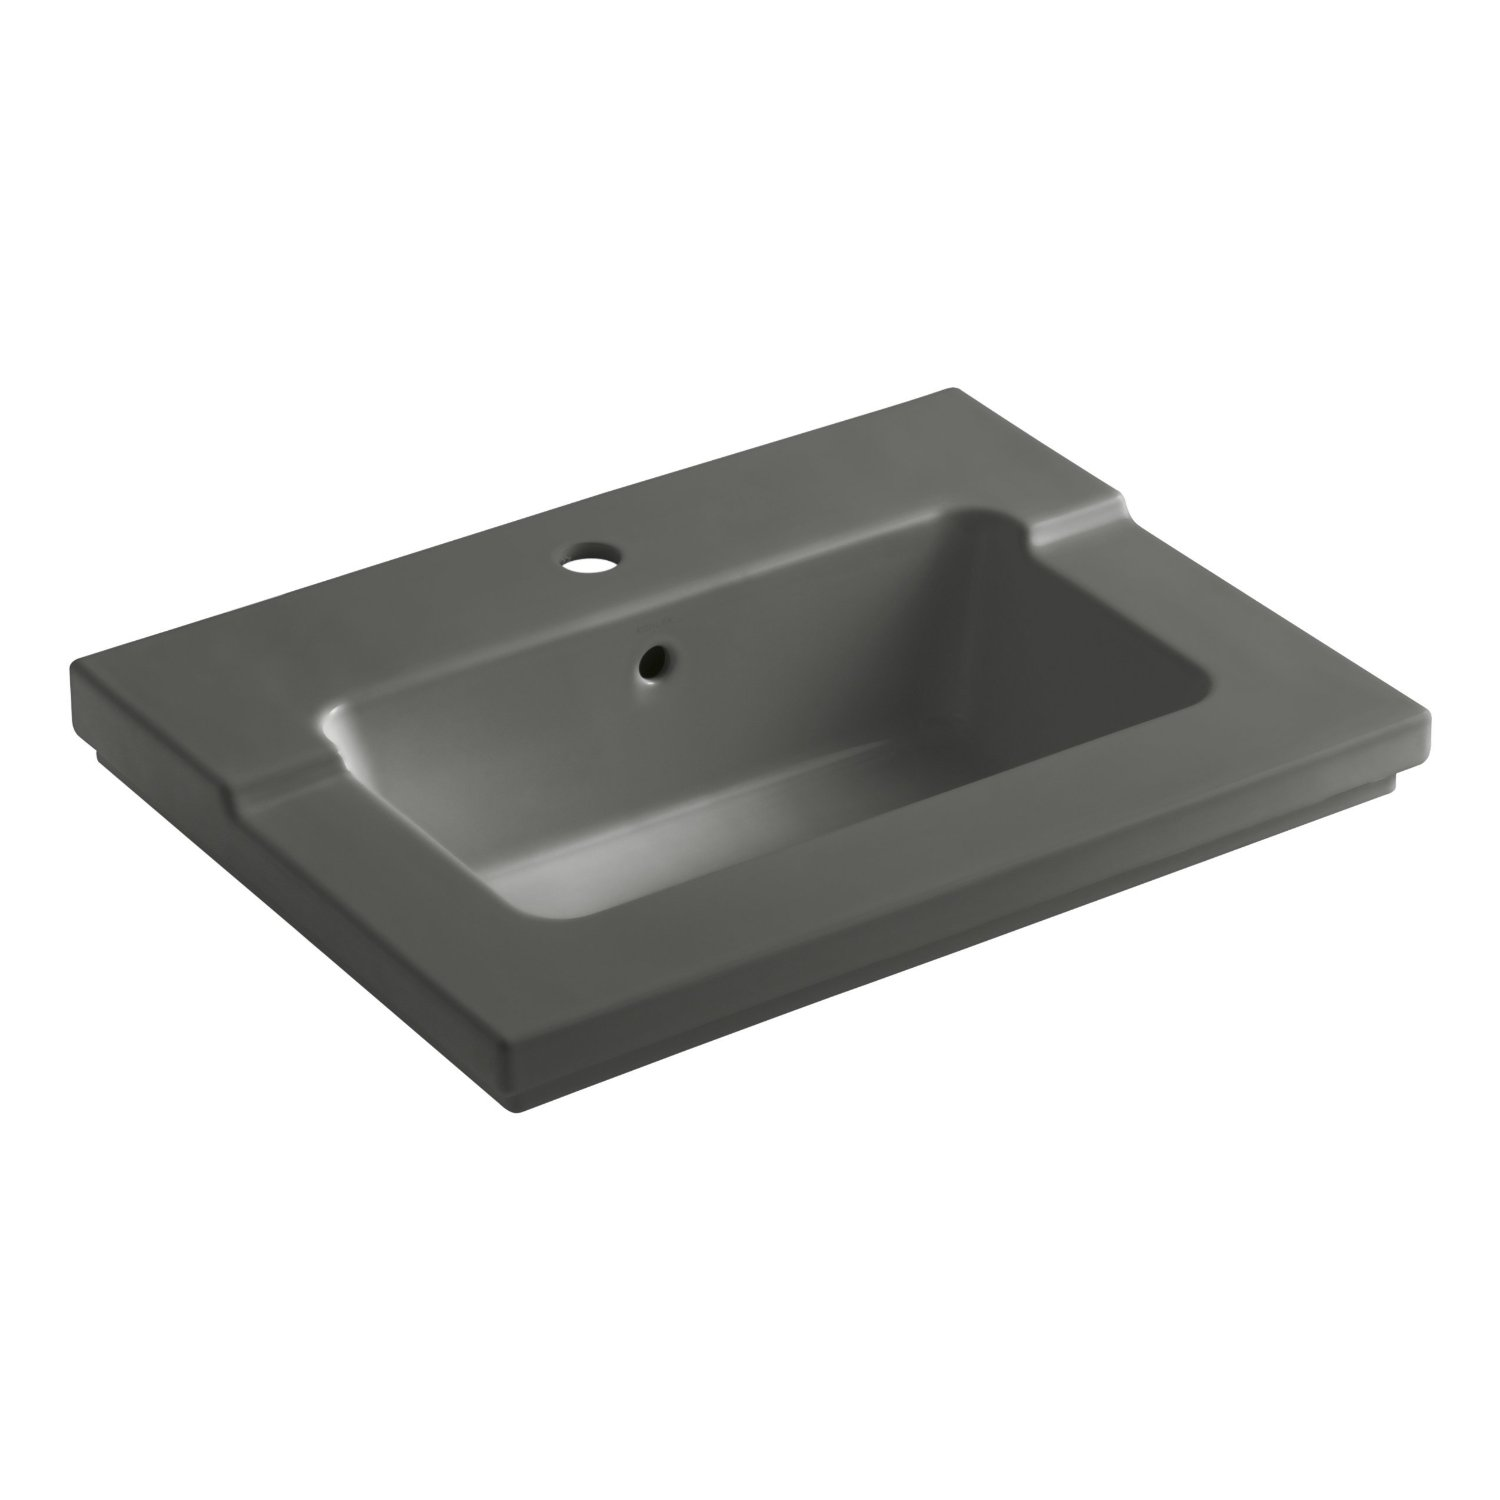 Kohler s Tresham K 2979 1 0 one piece surface and integrated lavatory is  available in 10 colors  including  from left  black  Mexican sand  and  thunder grey. KOHLER K 2979 1 47 Tresham One Piece Surface and Integrated